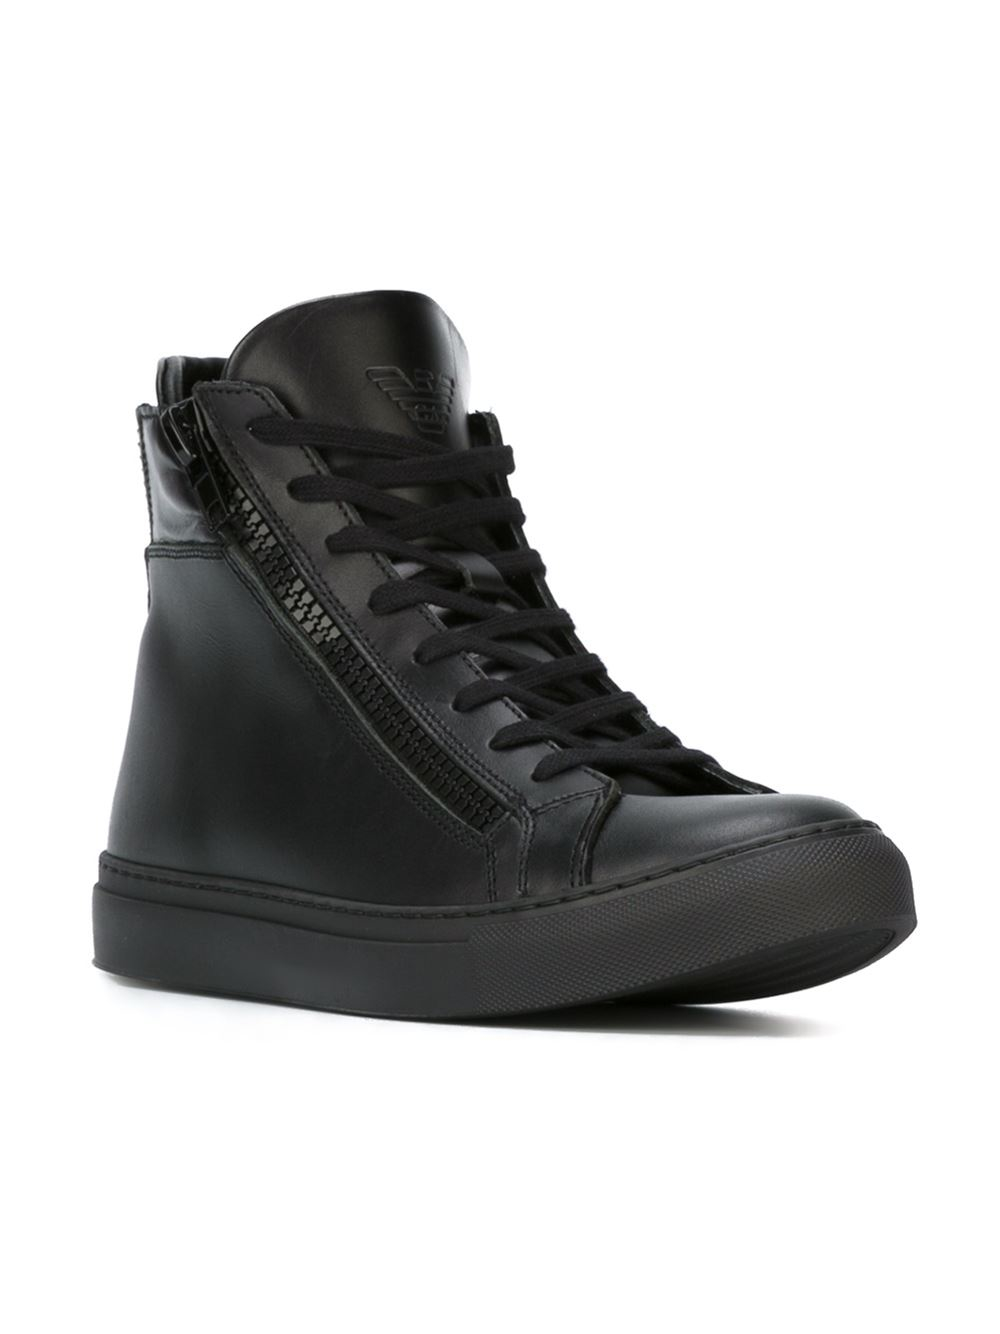 panelled side zip hi-tops - Black BOTH Shoes oSejwv